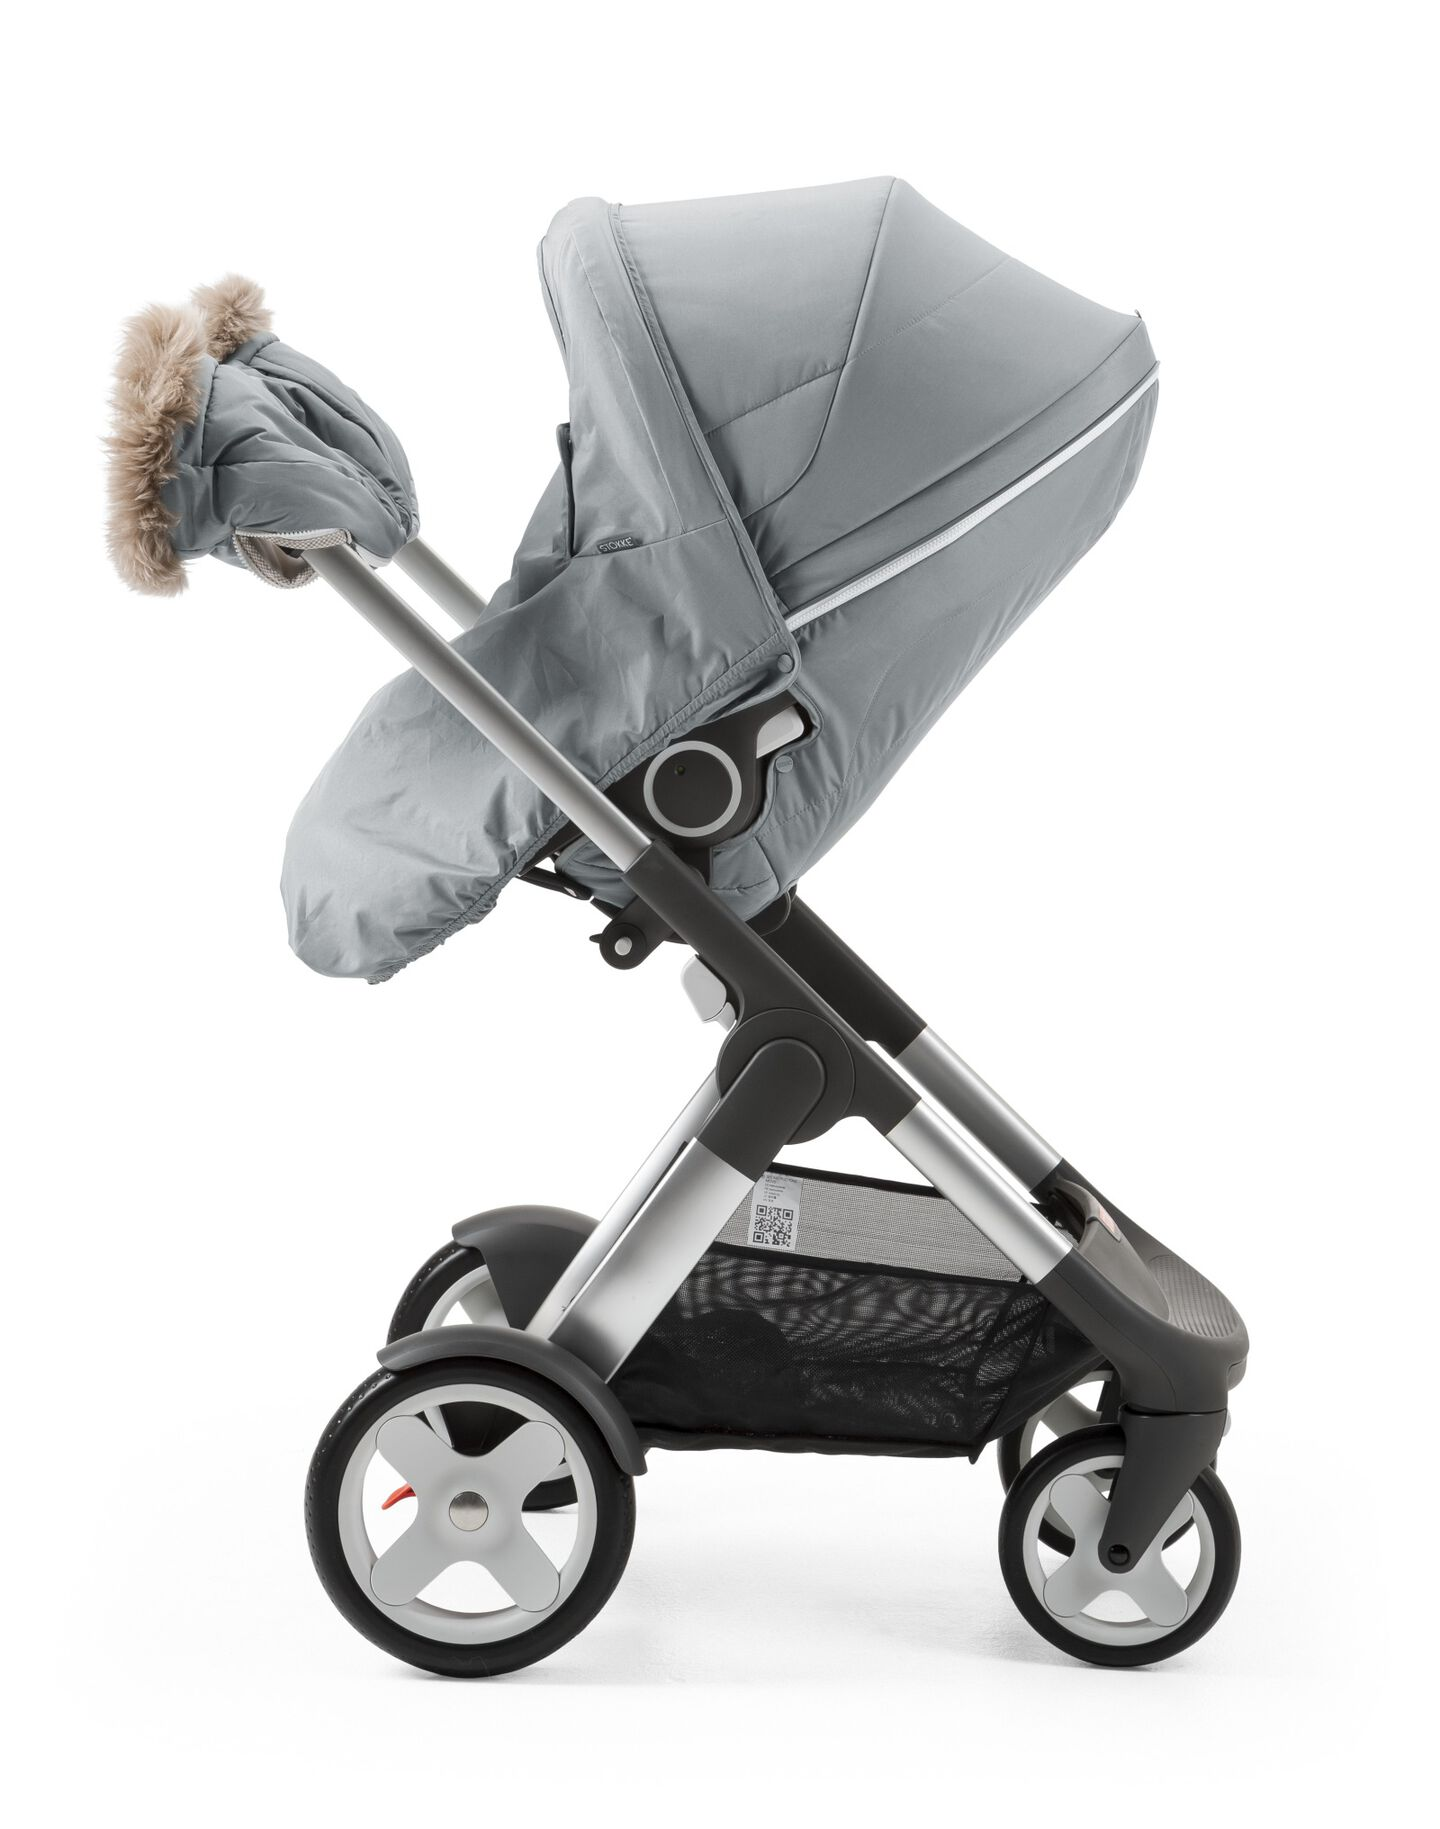 Stokke® Stroller Seat with Winter Kit Cloud Grey and Stokke® Crusi™ Chassis.